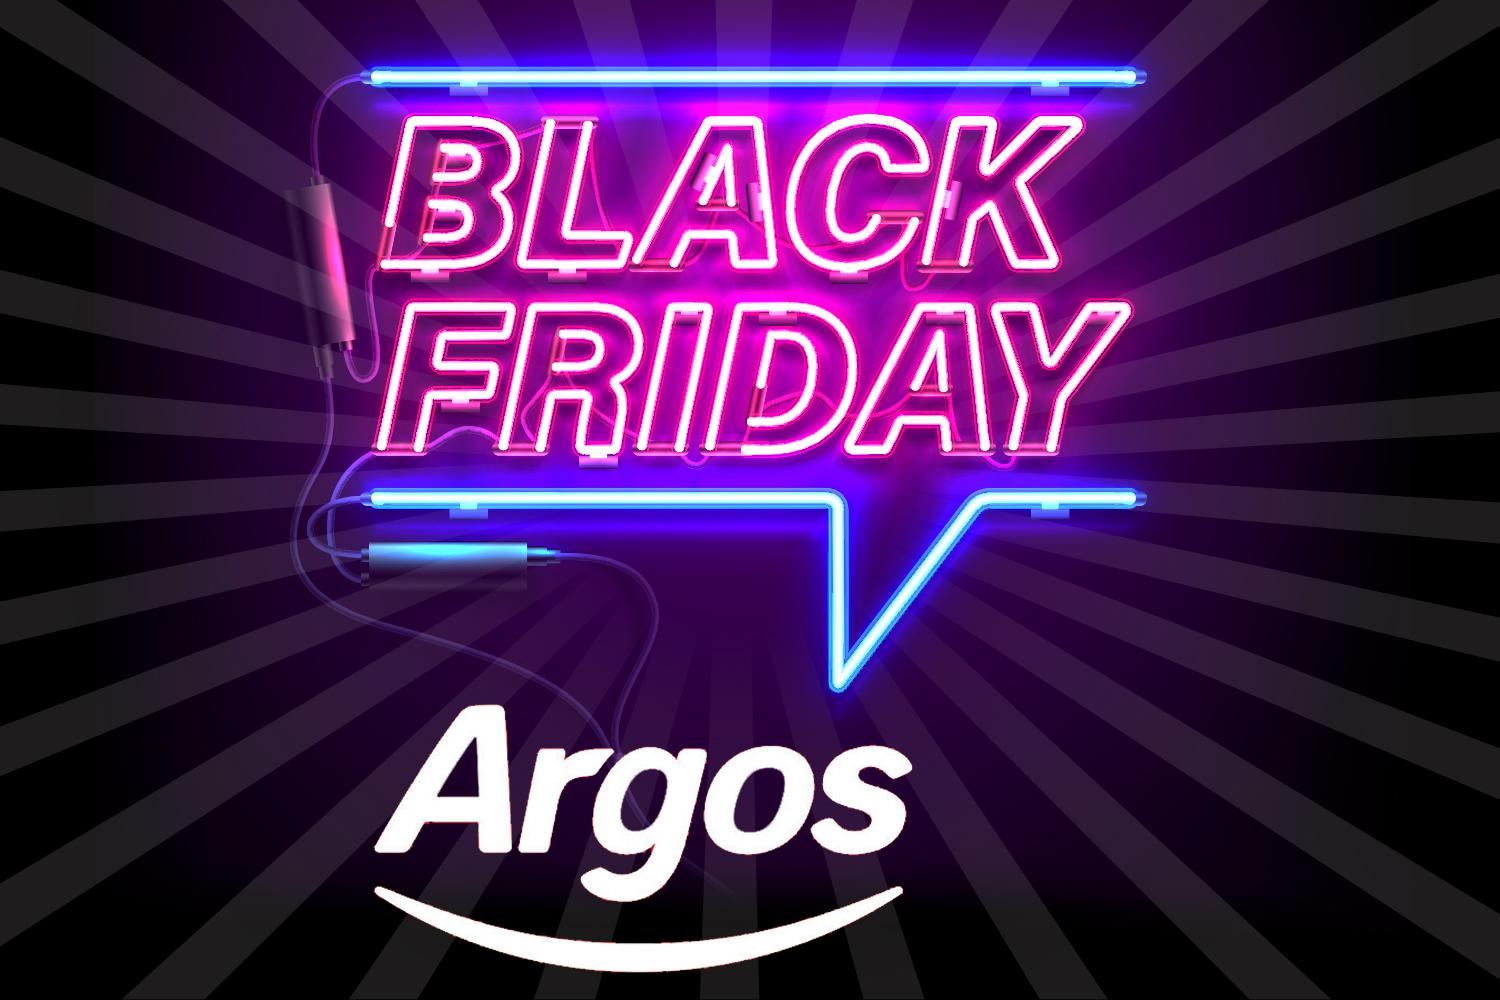 Save across electronics, and tech, homewares, toys and more in Argos' Black Friday sale 2020